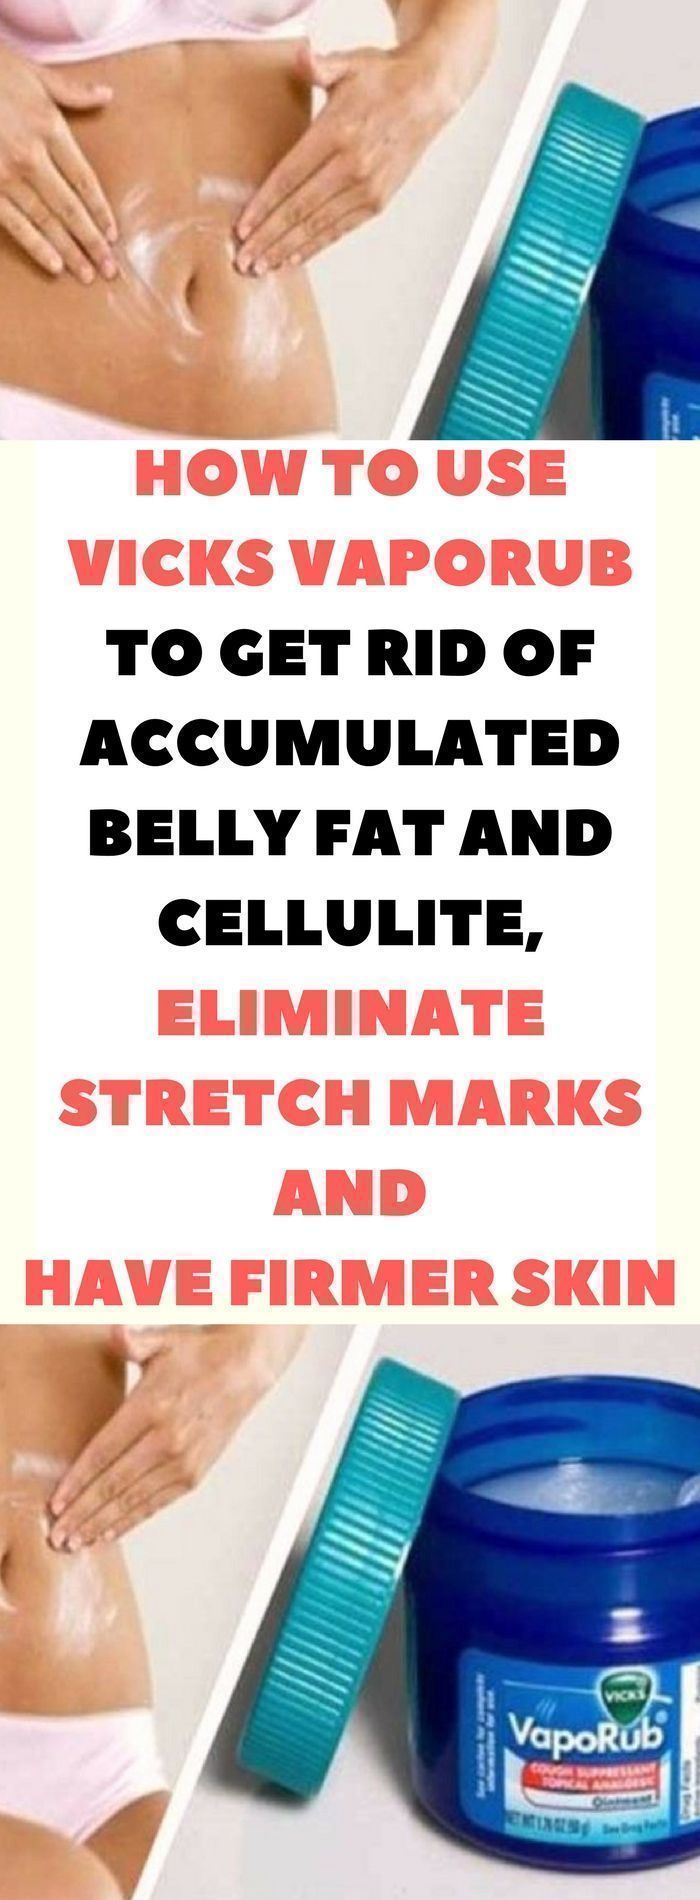 HOW TO USE VICKS VAPORUB TO GET RID OF ACCUMULATED BELLY FAT AND CELLULITE; ELIMINATE STRETCH MARKS AND HAVE FIRMER SKIN. Miracle.!! belly fat workout | belly fat diet | belly fat burner | belly fat burning foods | belly fat burner drink | Belly Fat | How To Lose Belly Fat | Elena's Belly Fat Diary | Belly Fat Tea | Belly Fats | Belly Fat Diet |